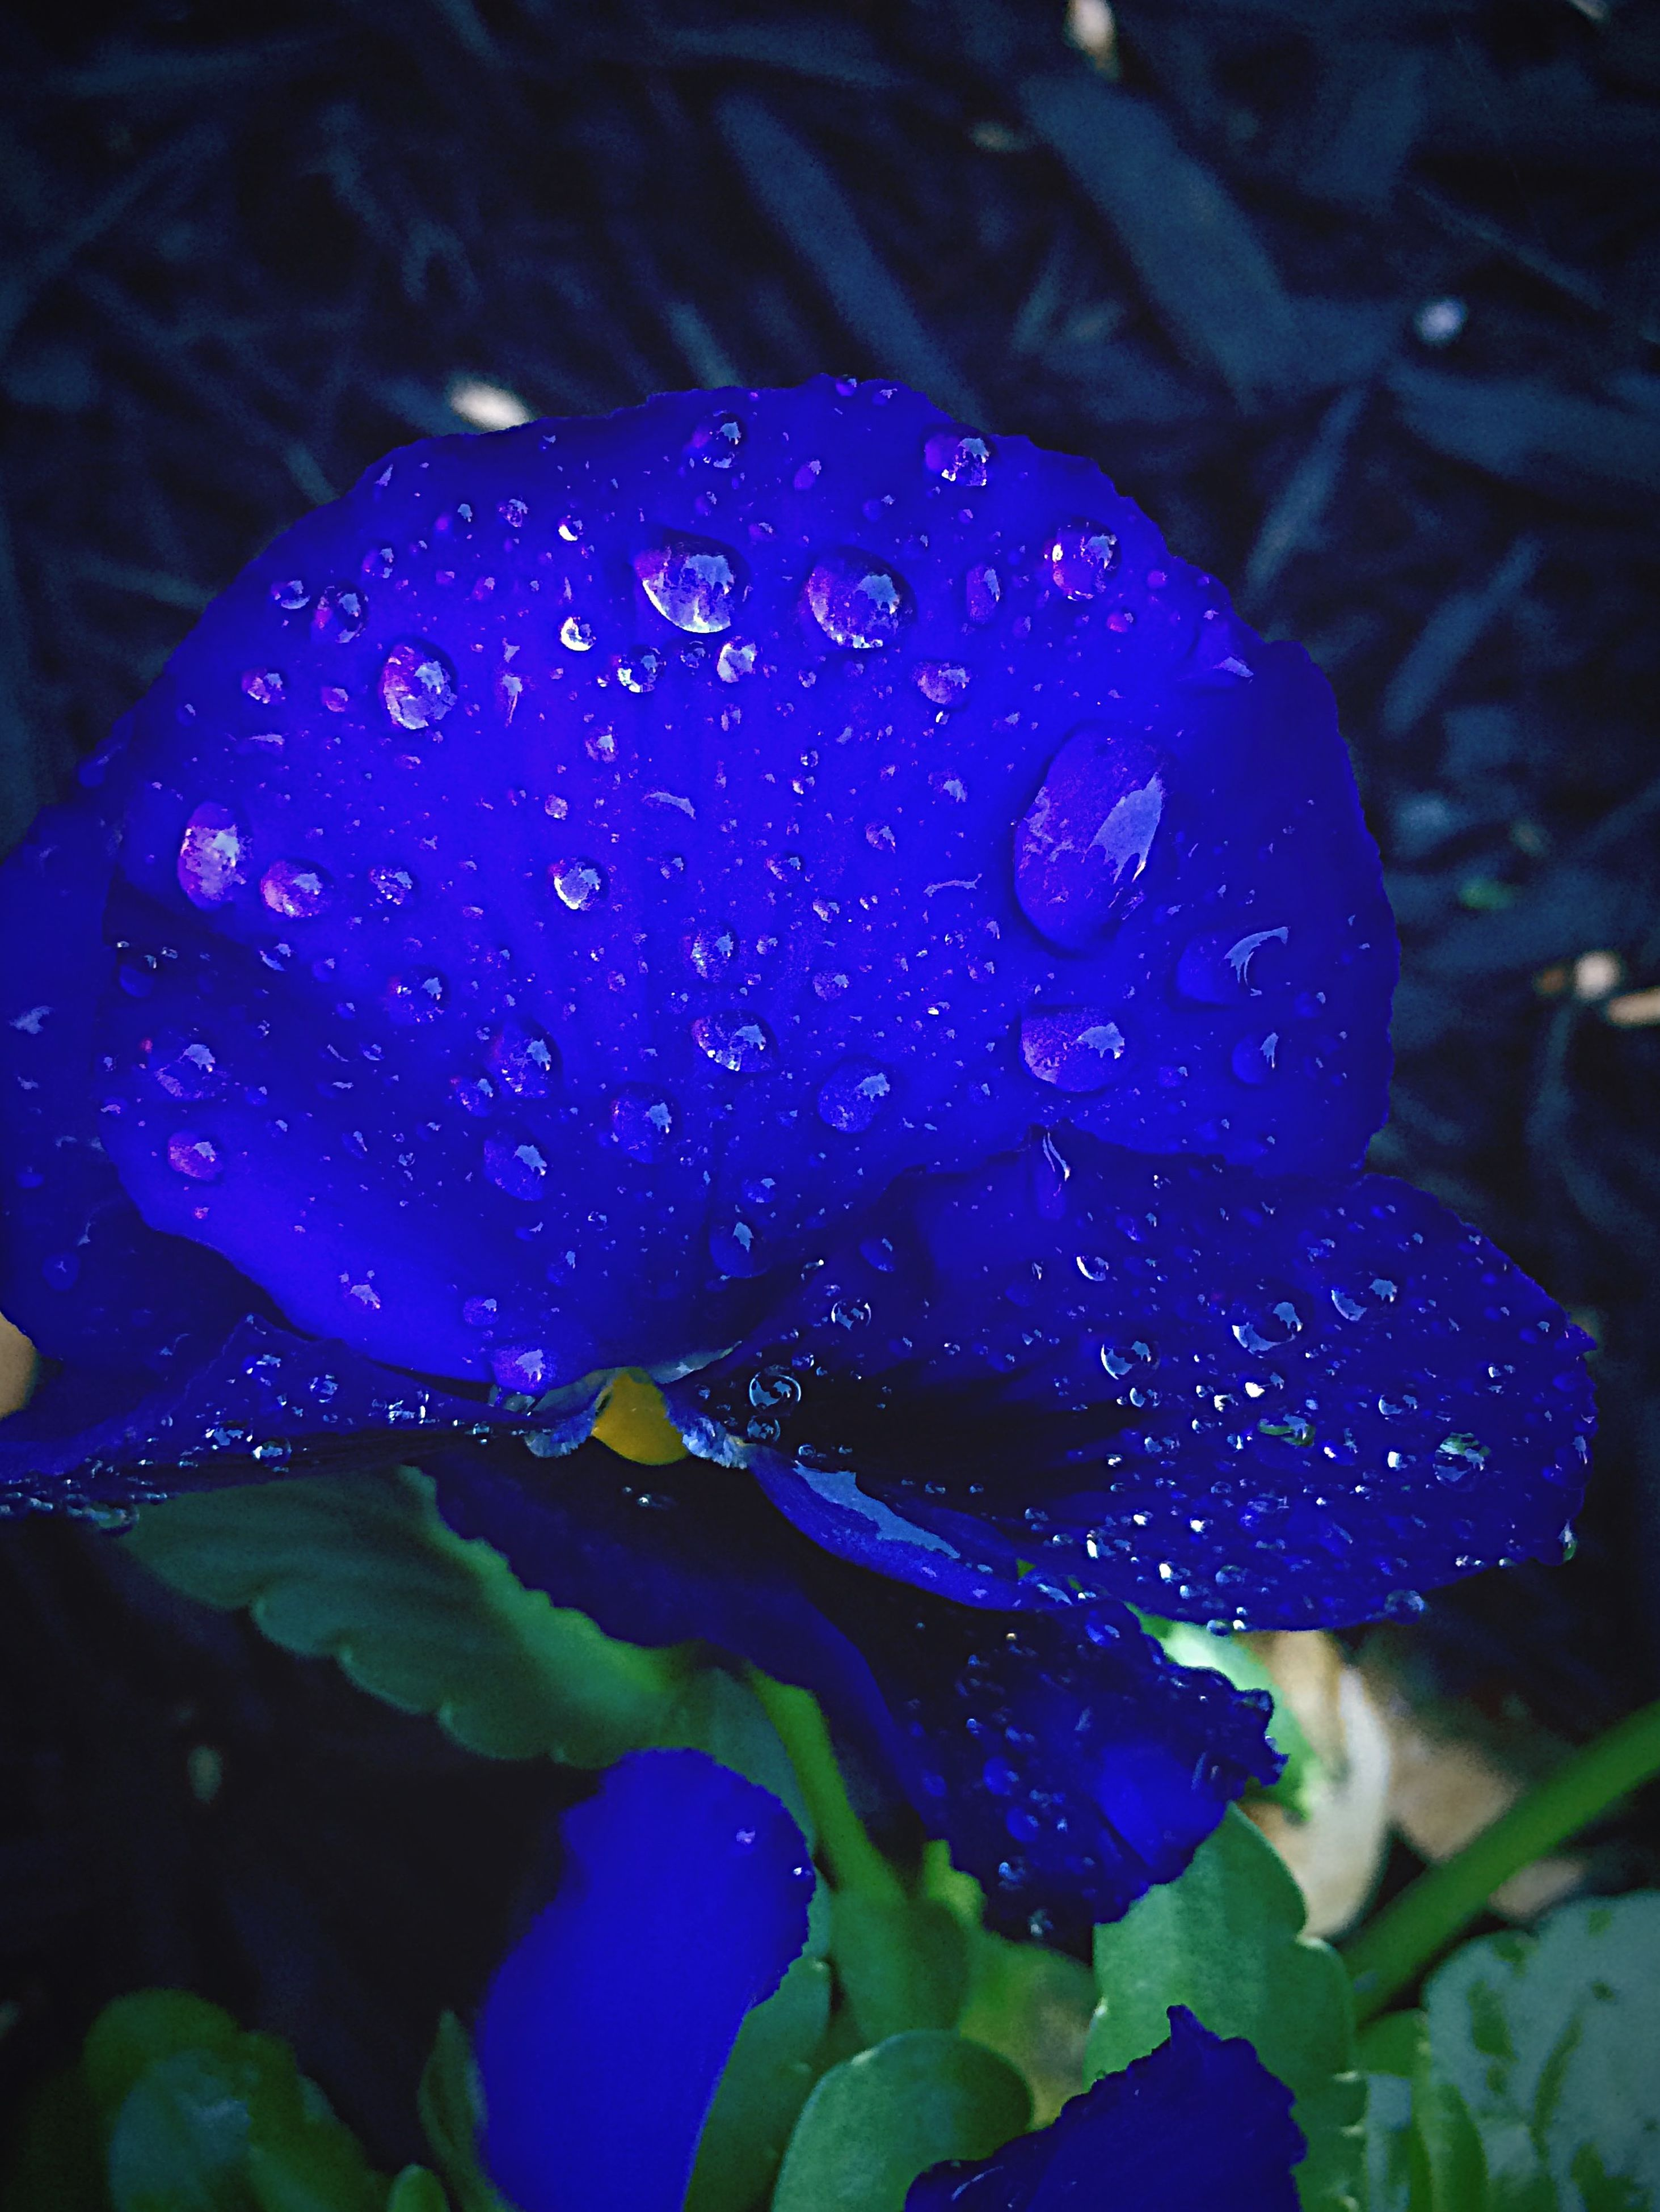 drop, water, flower, freshness, wet, close-up, fragility, petal, beauty in nature, focus on foreground, purple, flower head, growth, nature, plant, dew, blooming, leaf, day, outdoors